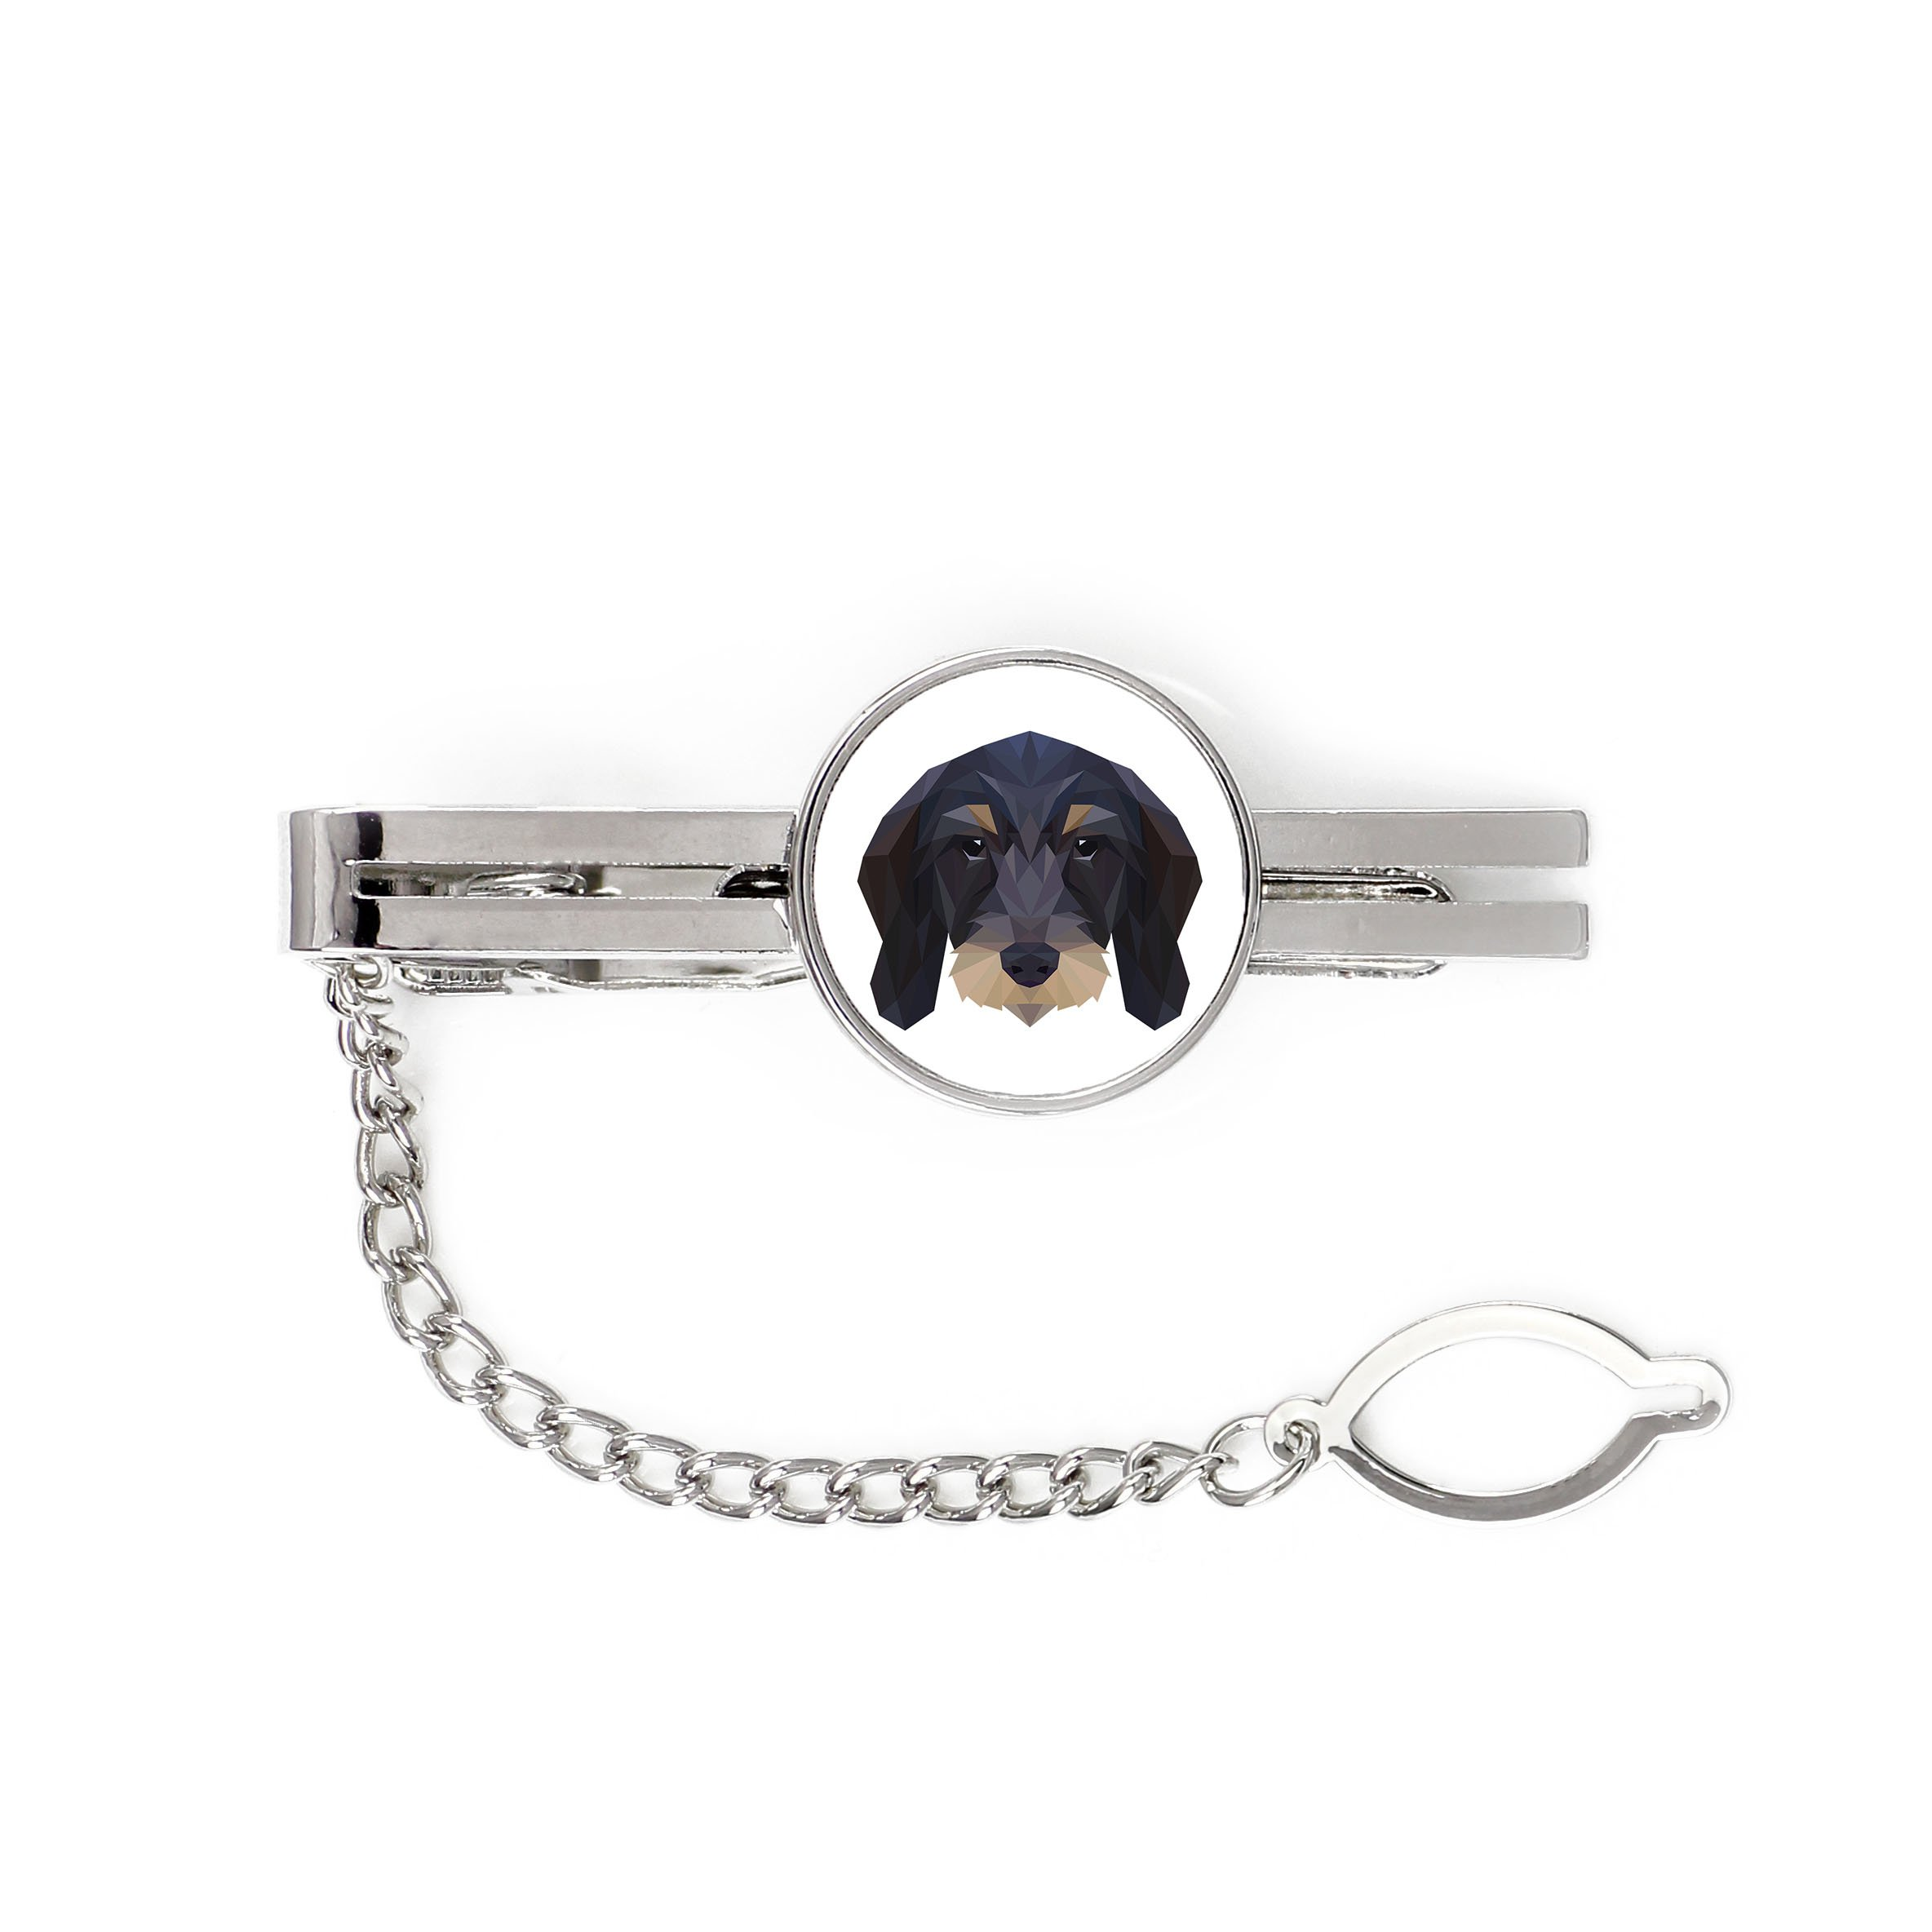 Dachshund Wirehaired, tie pin, clip with an image of a dog, elegant, geometric